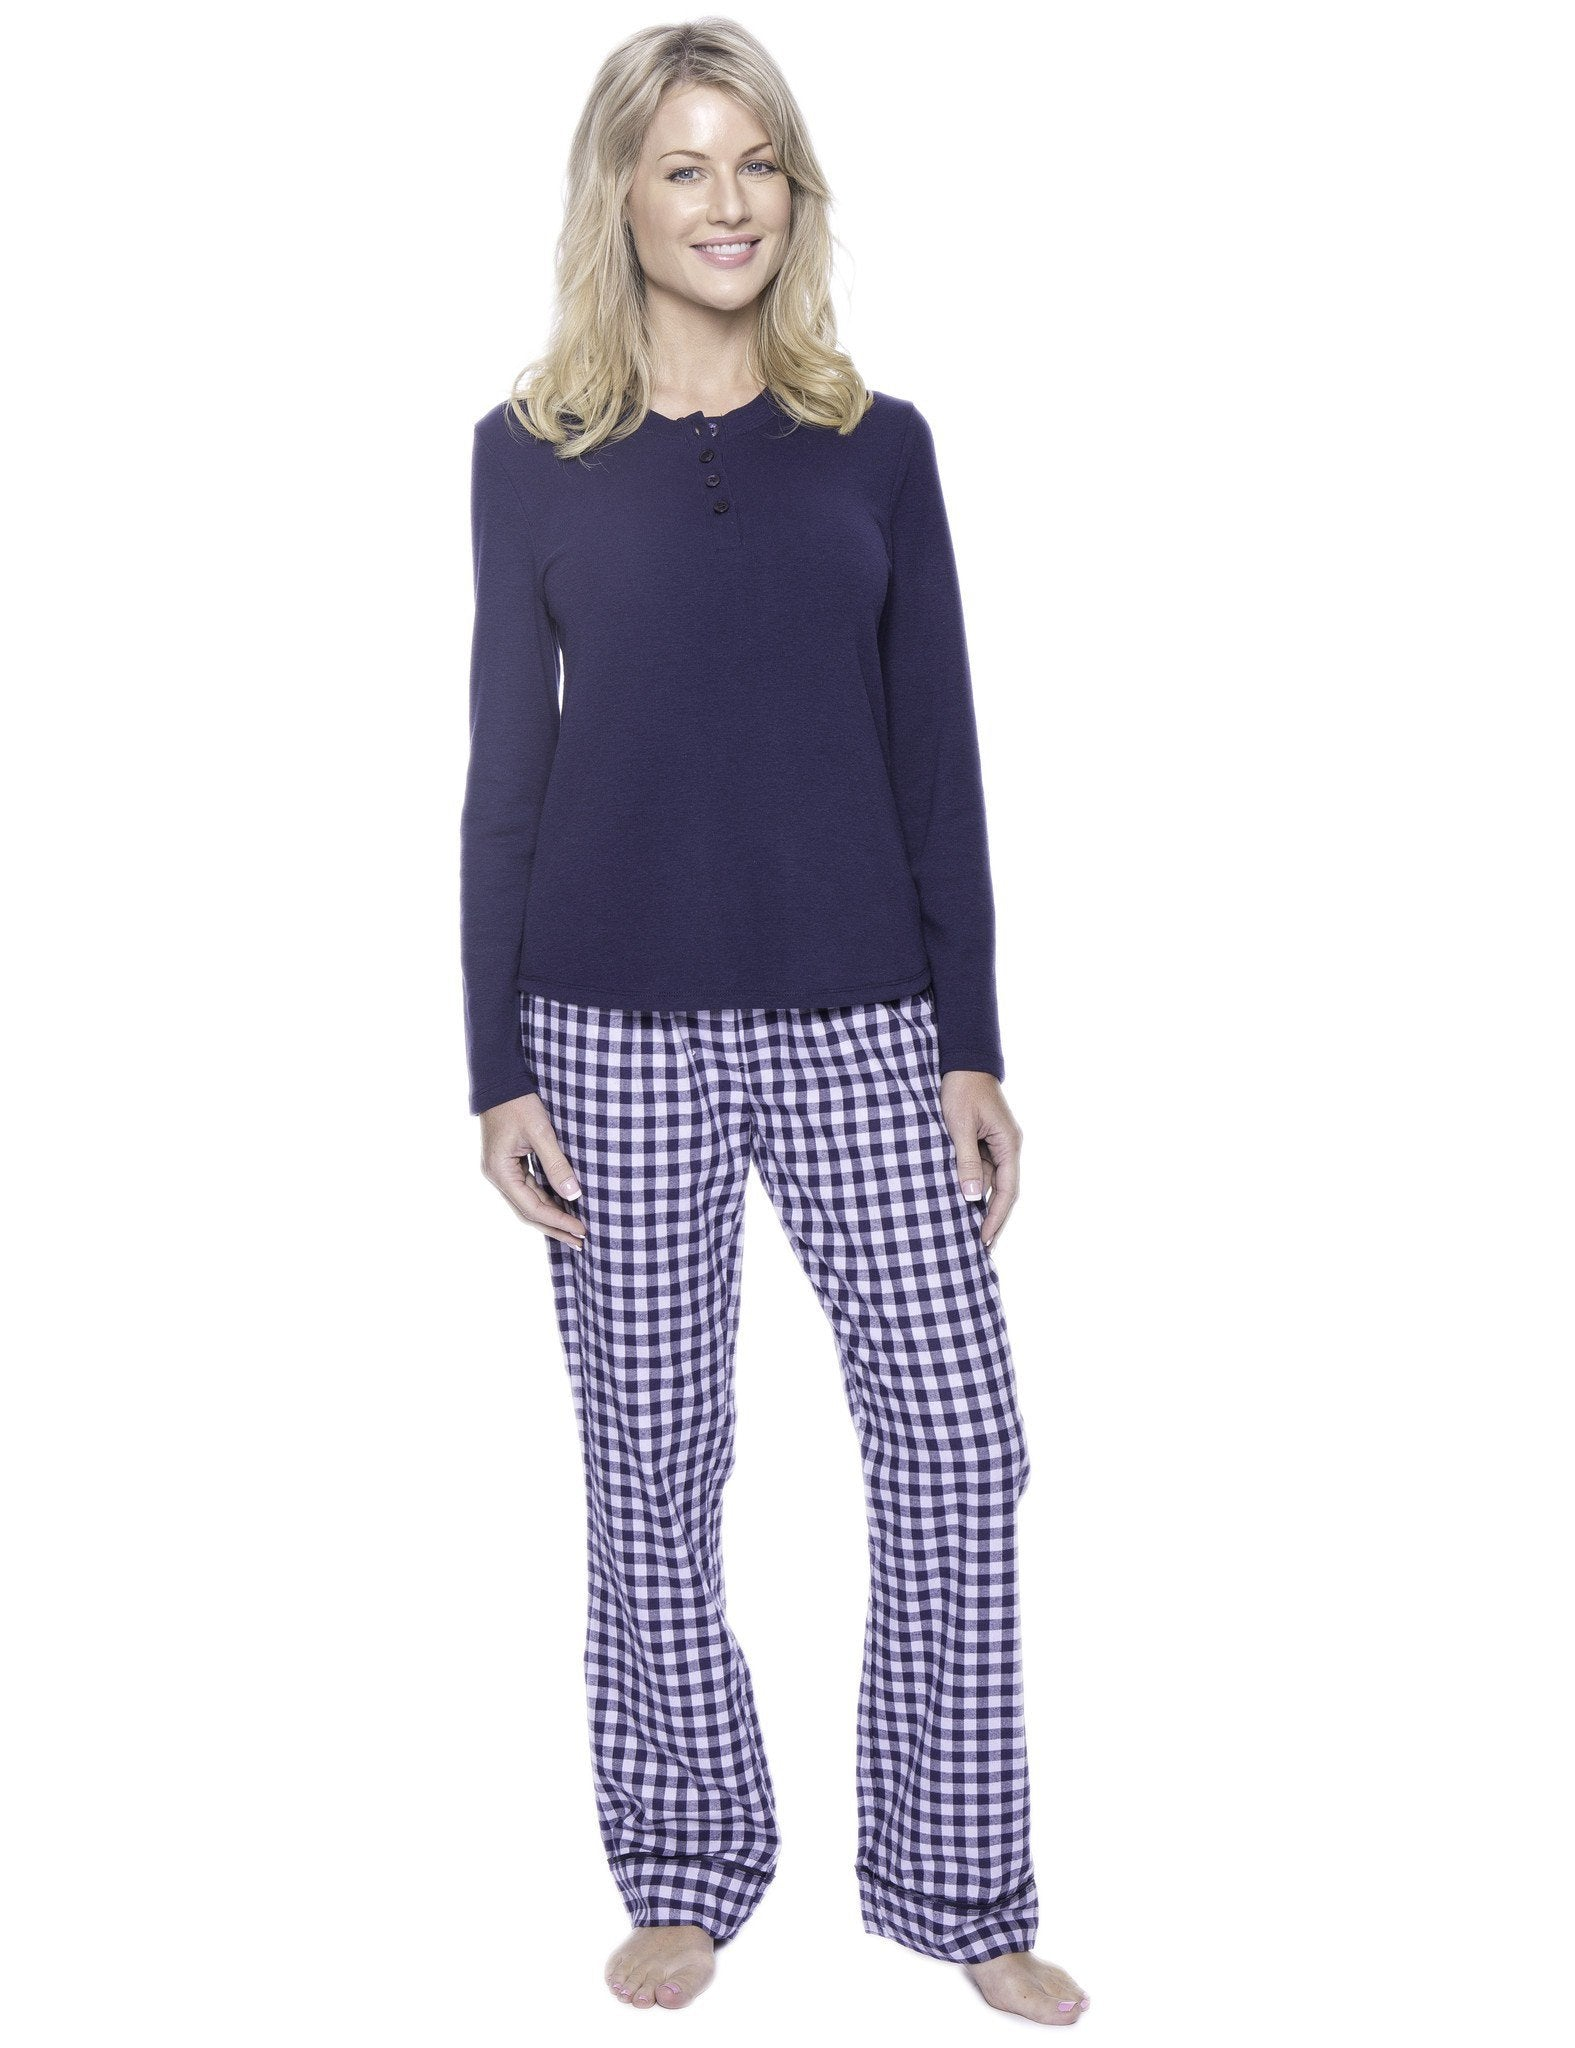 Womens Premium 100% Cotton Flannel Loungewear Set - Gingham Blue/Heather